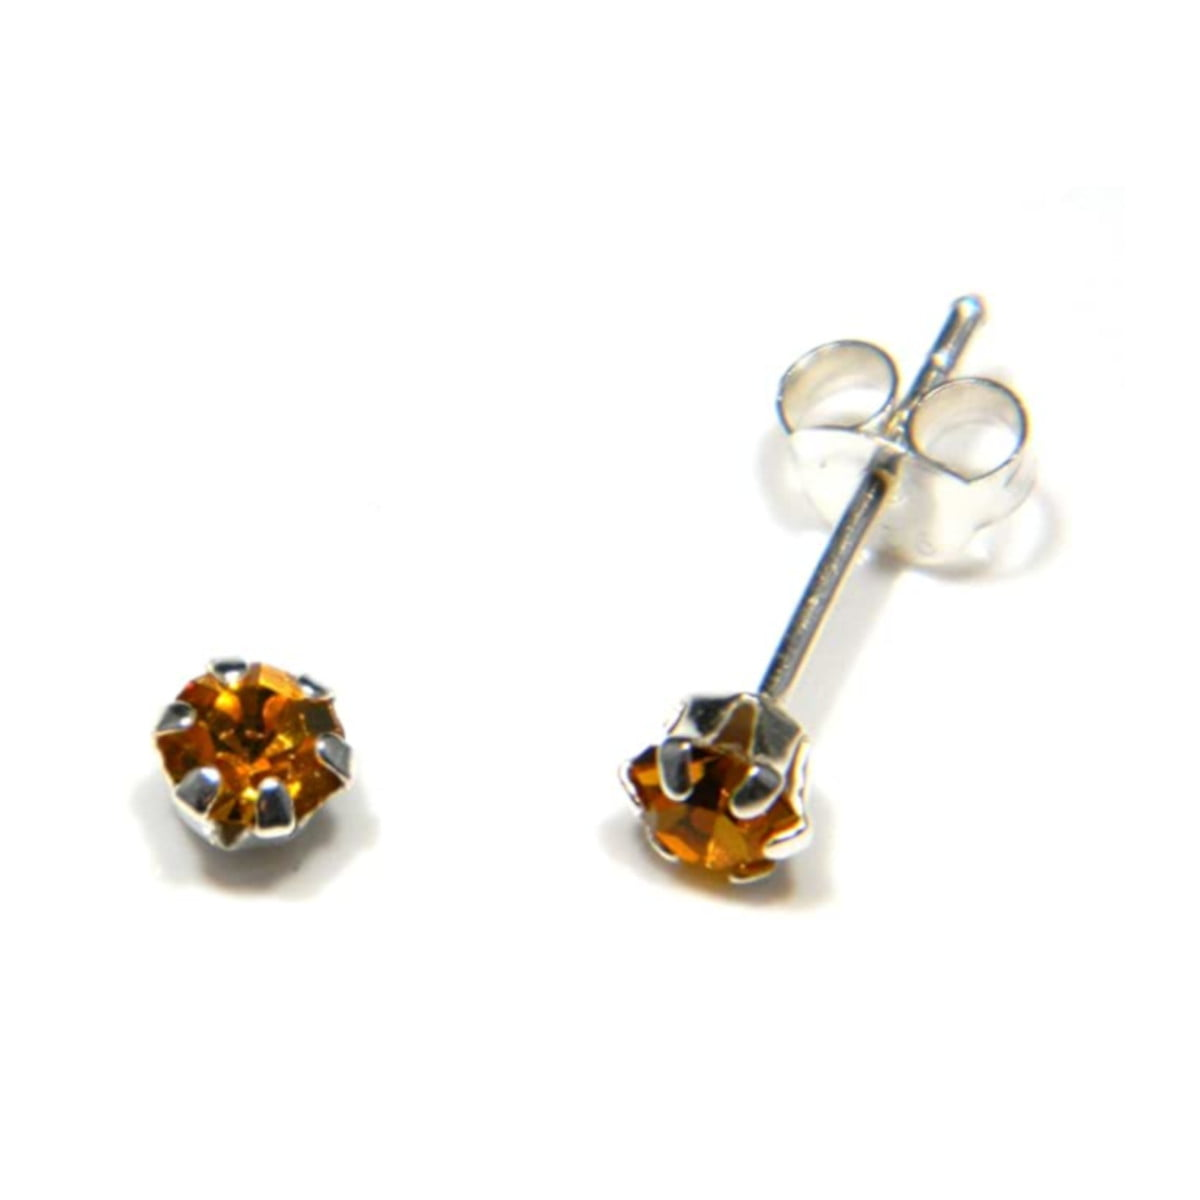 4 mm amber coloured crystal stud round solitaire earrings in sterling silver